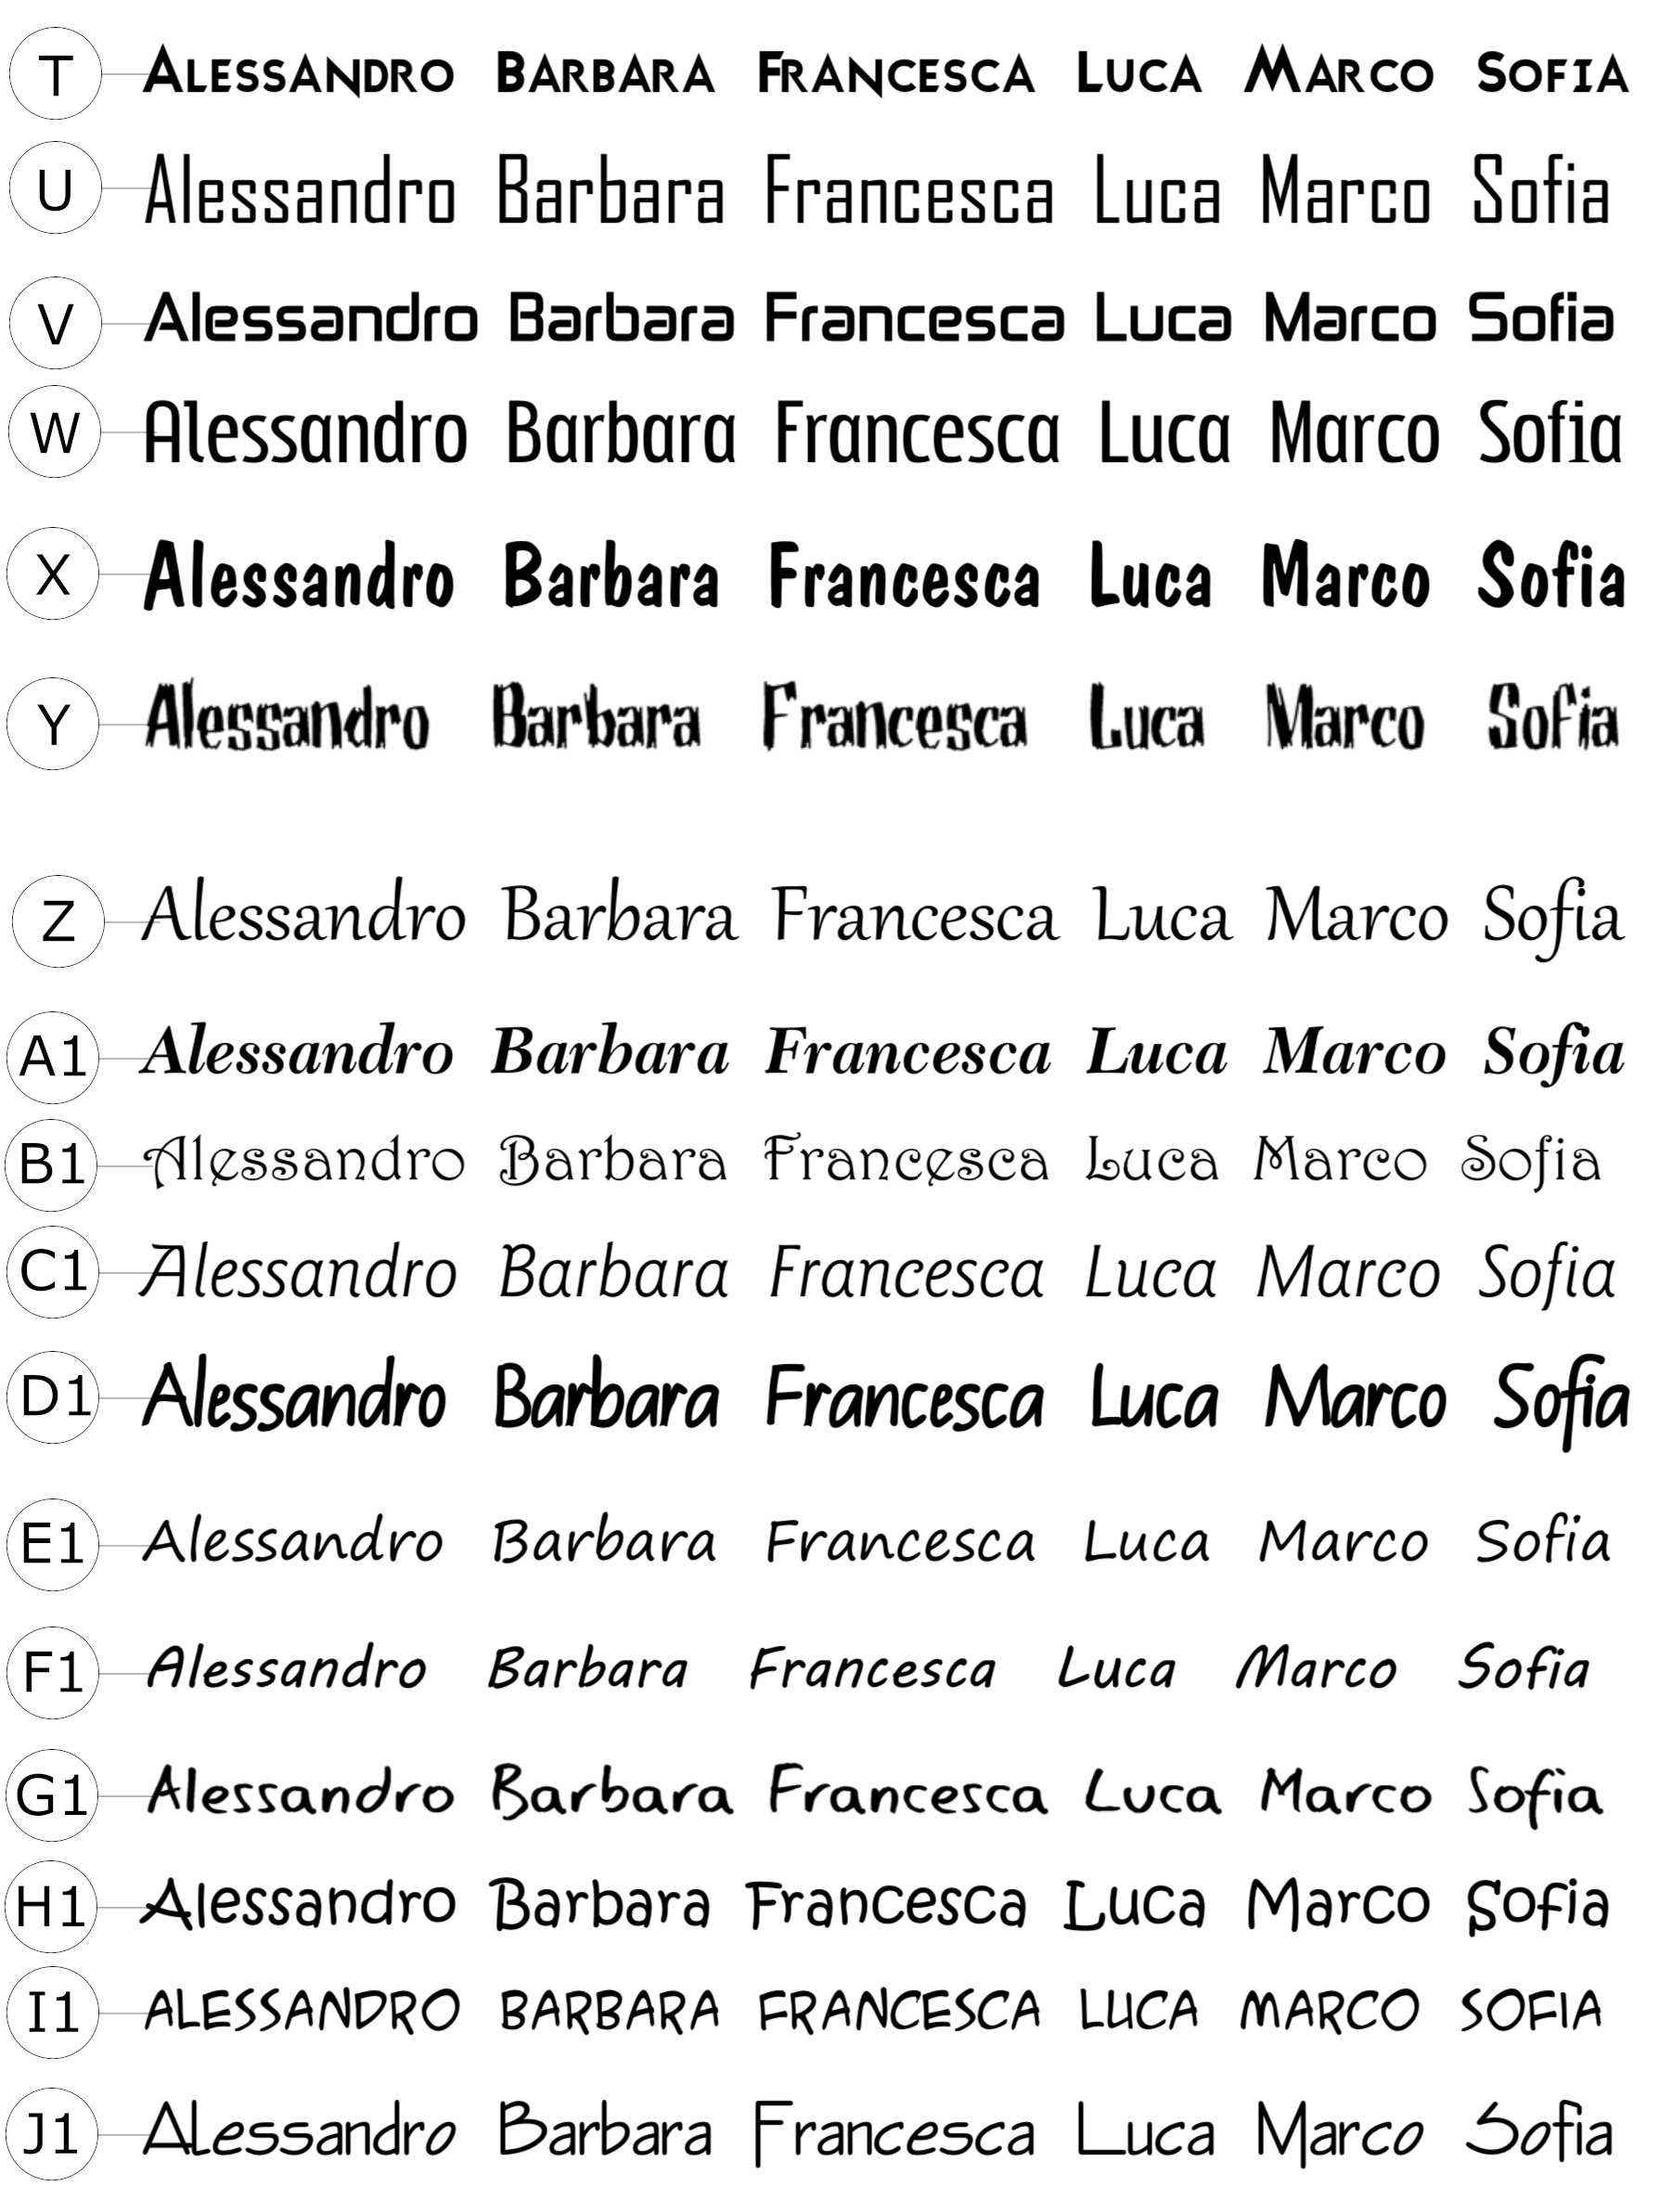 elenco font incisioni pagina 2